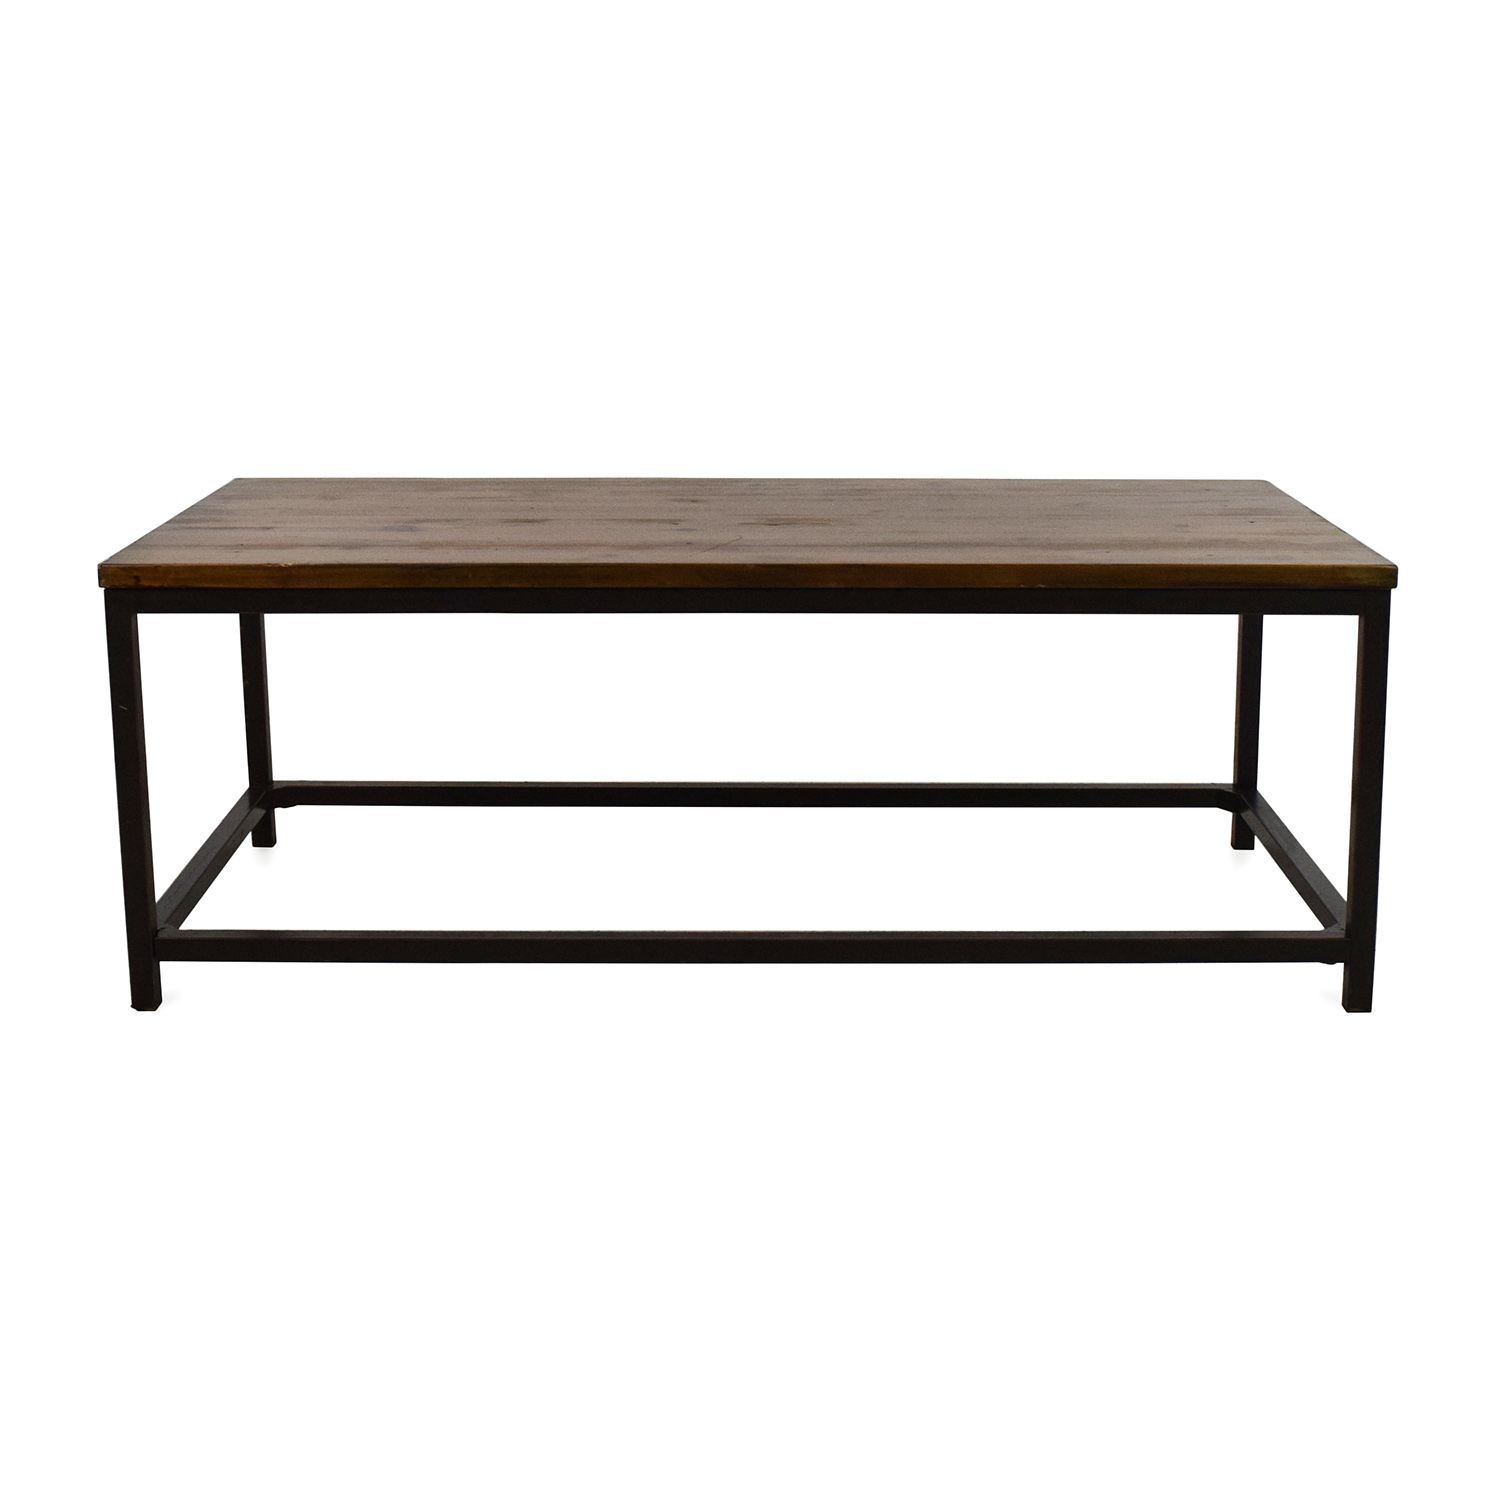 58% OFF   Pottery Barn Pottery Barn Wood Coffee Table / Tables